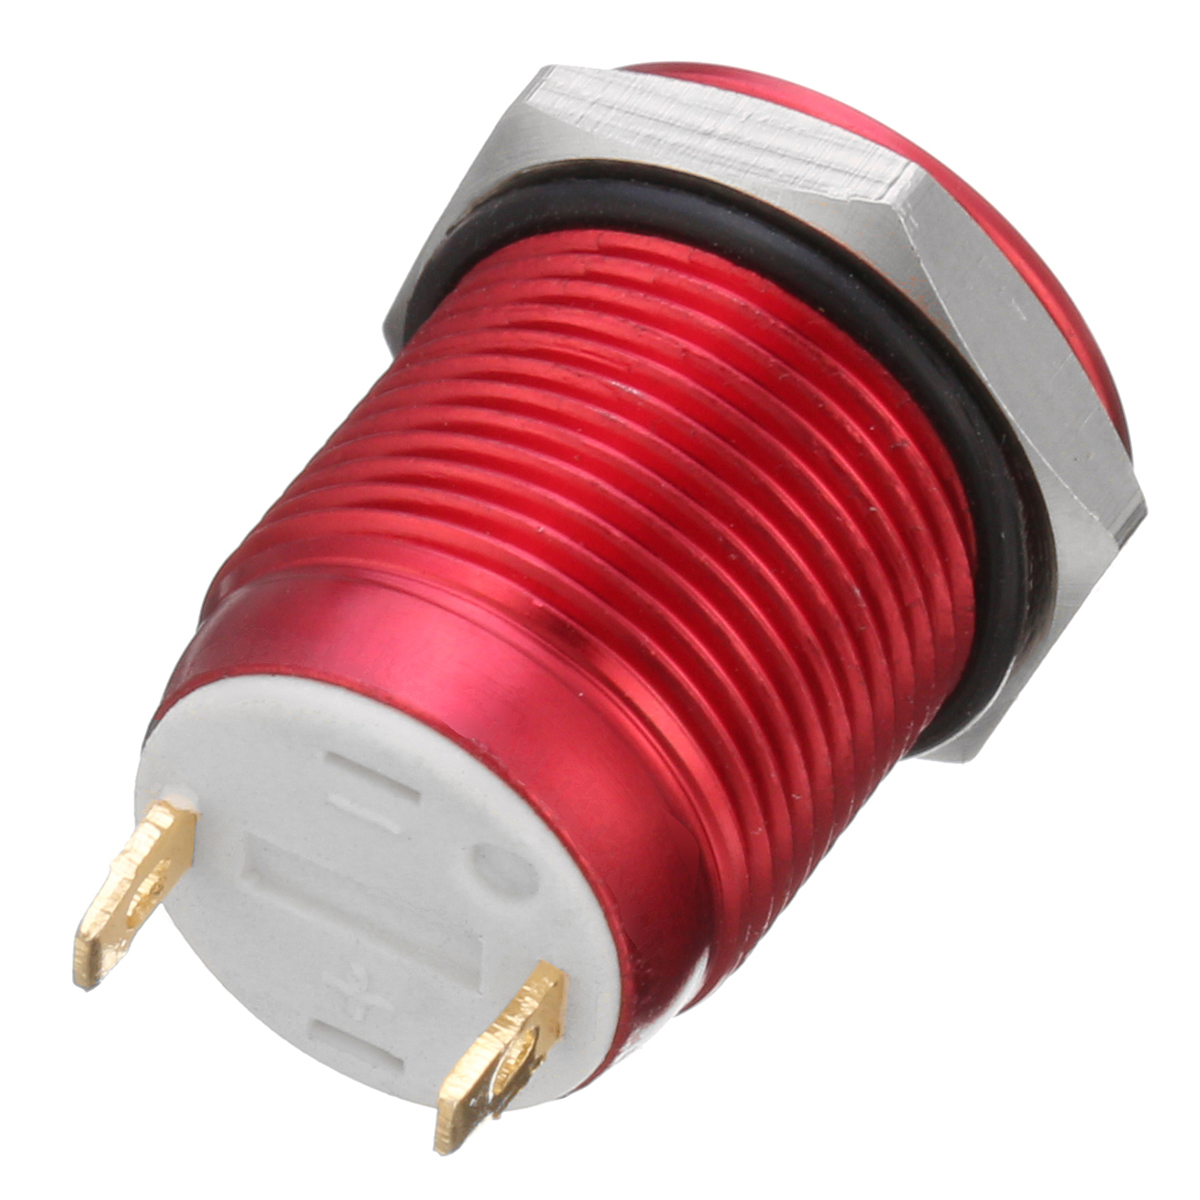 5a 16v 12mm 2pin Button Switch Stainless Steel Momentary Push Switches Large 10mm Latching Red 7556c89e Bb16 4d3b 9e17 3671fcf056a6